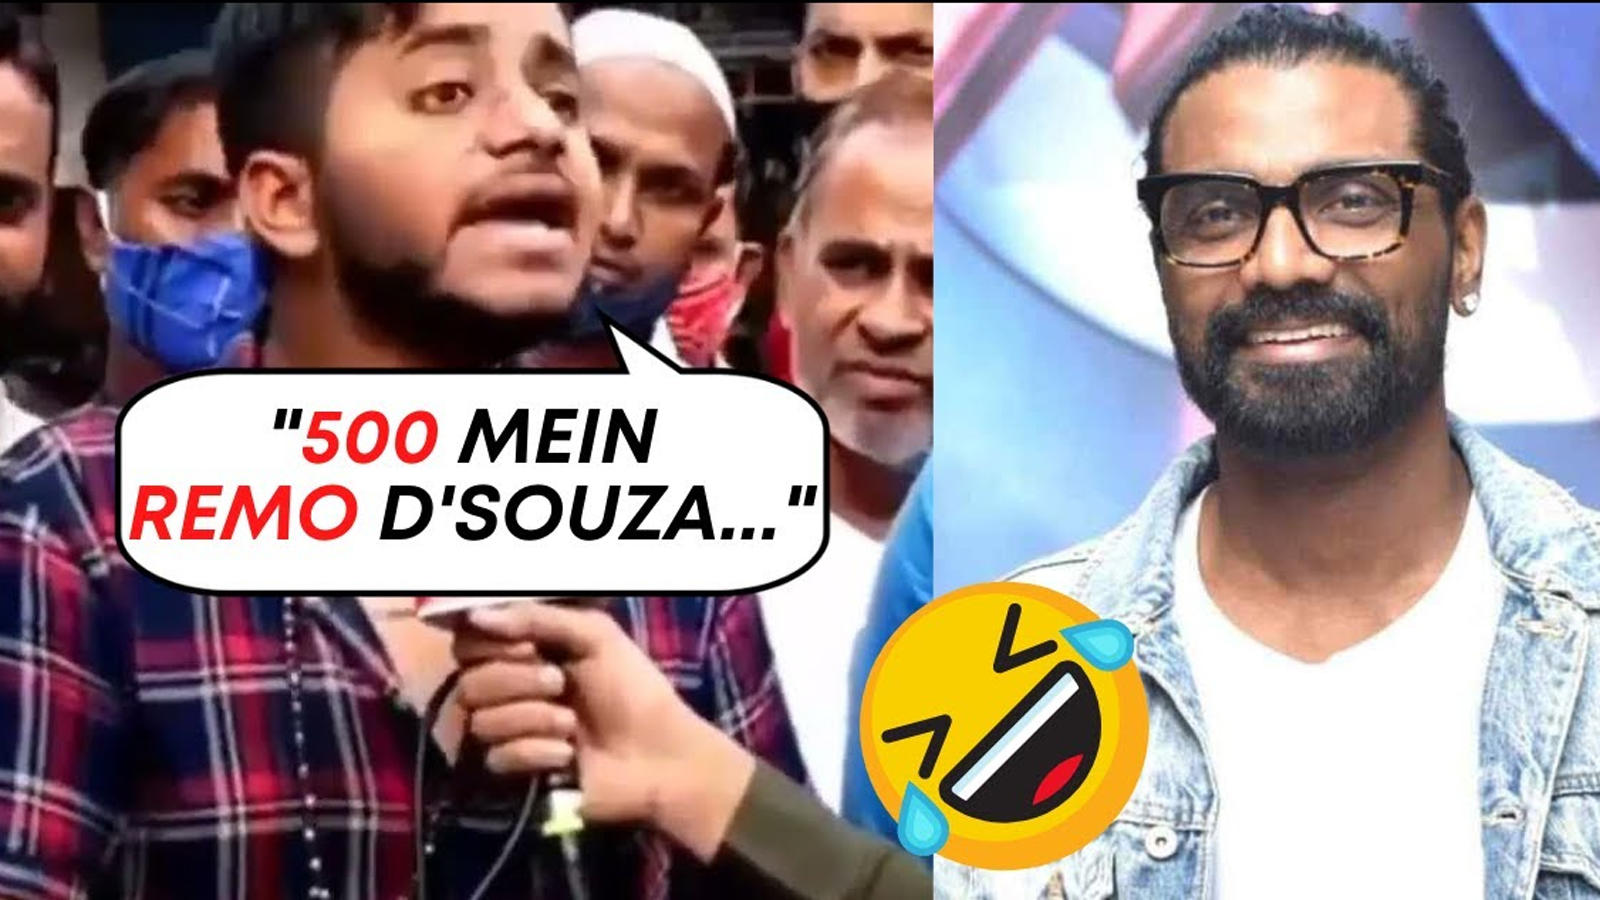 angry-man-calls-remdesivir-as-remo-dsouza-netizens-react